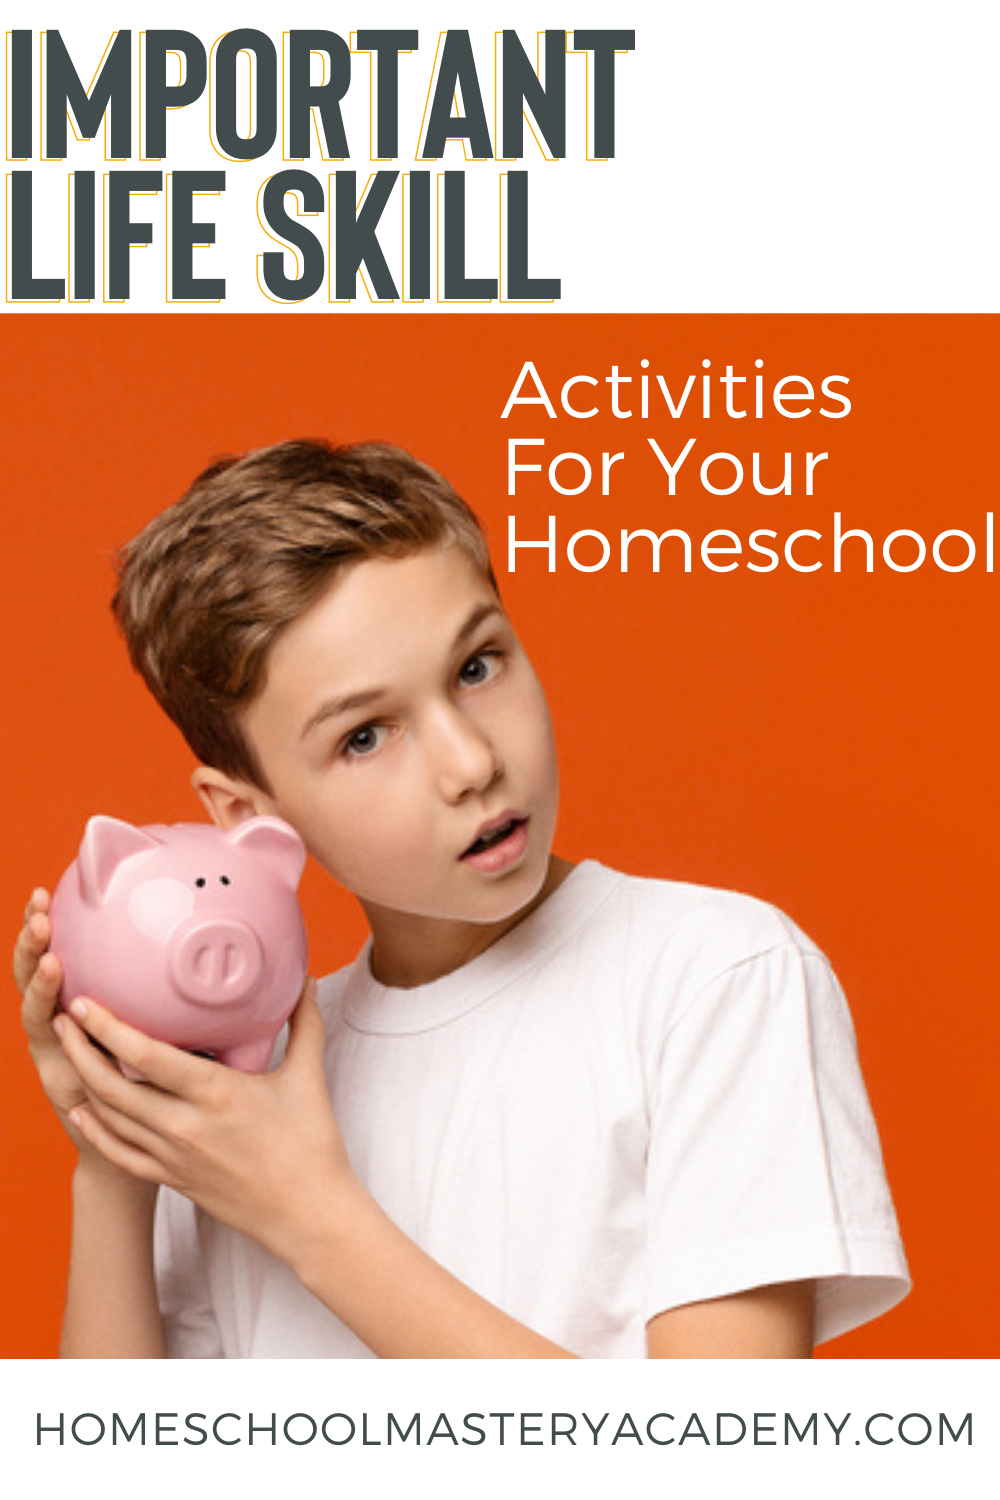 Life skills are incredibly important! There is no better way to learn than to incorporate life skill activities into your homeschool day too. Check out how you can easily blend life skills into your homeschool. #homeschool #lifeskills #lifeskillactivities #homeeducation